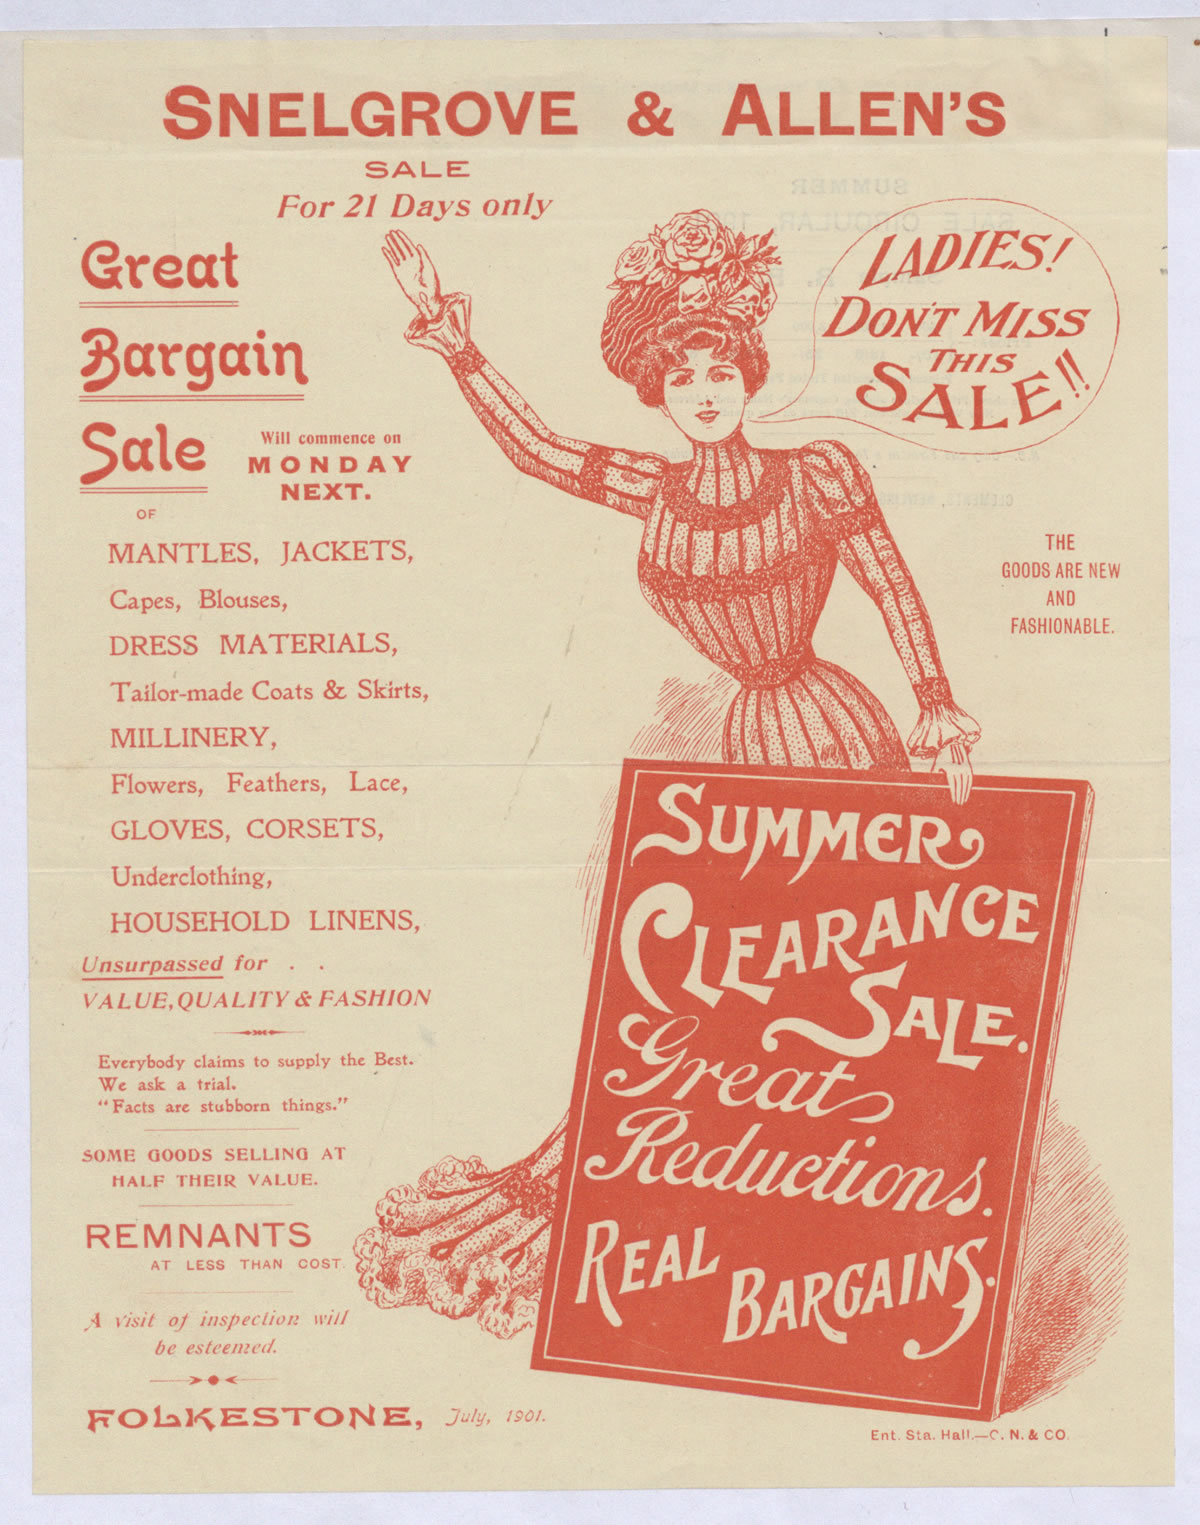 Advert for a clothing sale at Snelgrove and Allen, which lists the types of clothes on sale, 1901 (COPY 1/180 f.204)